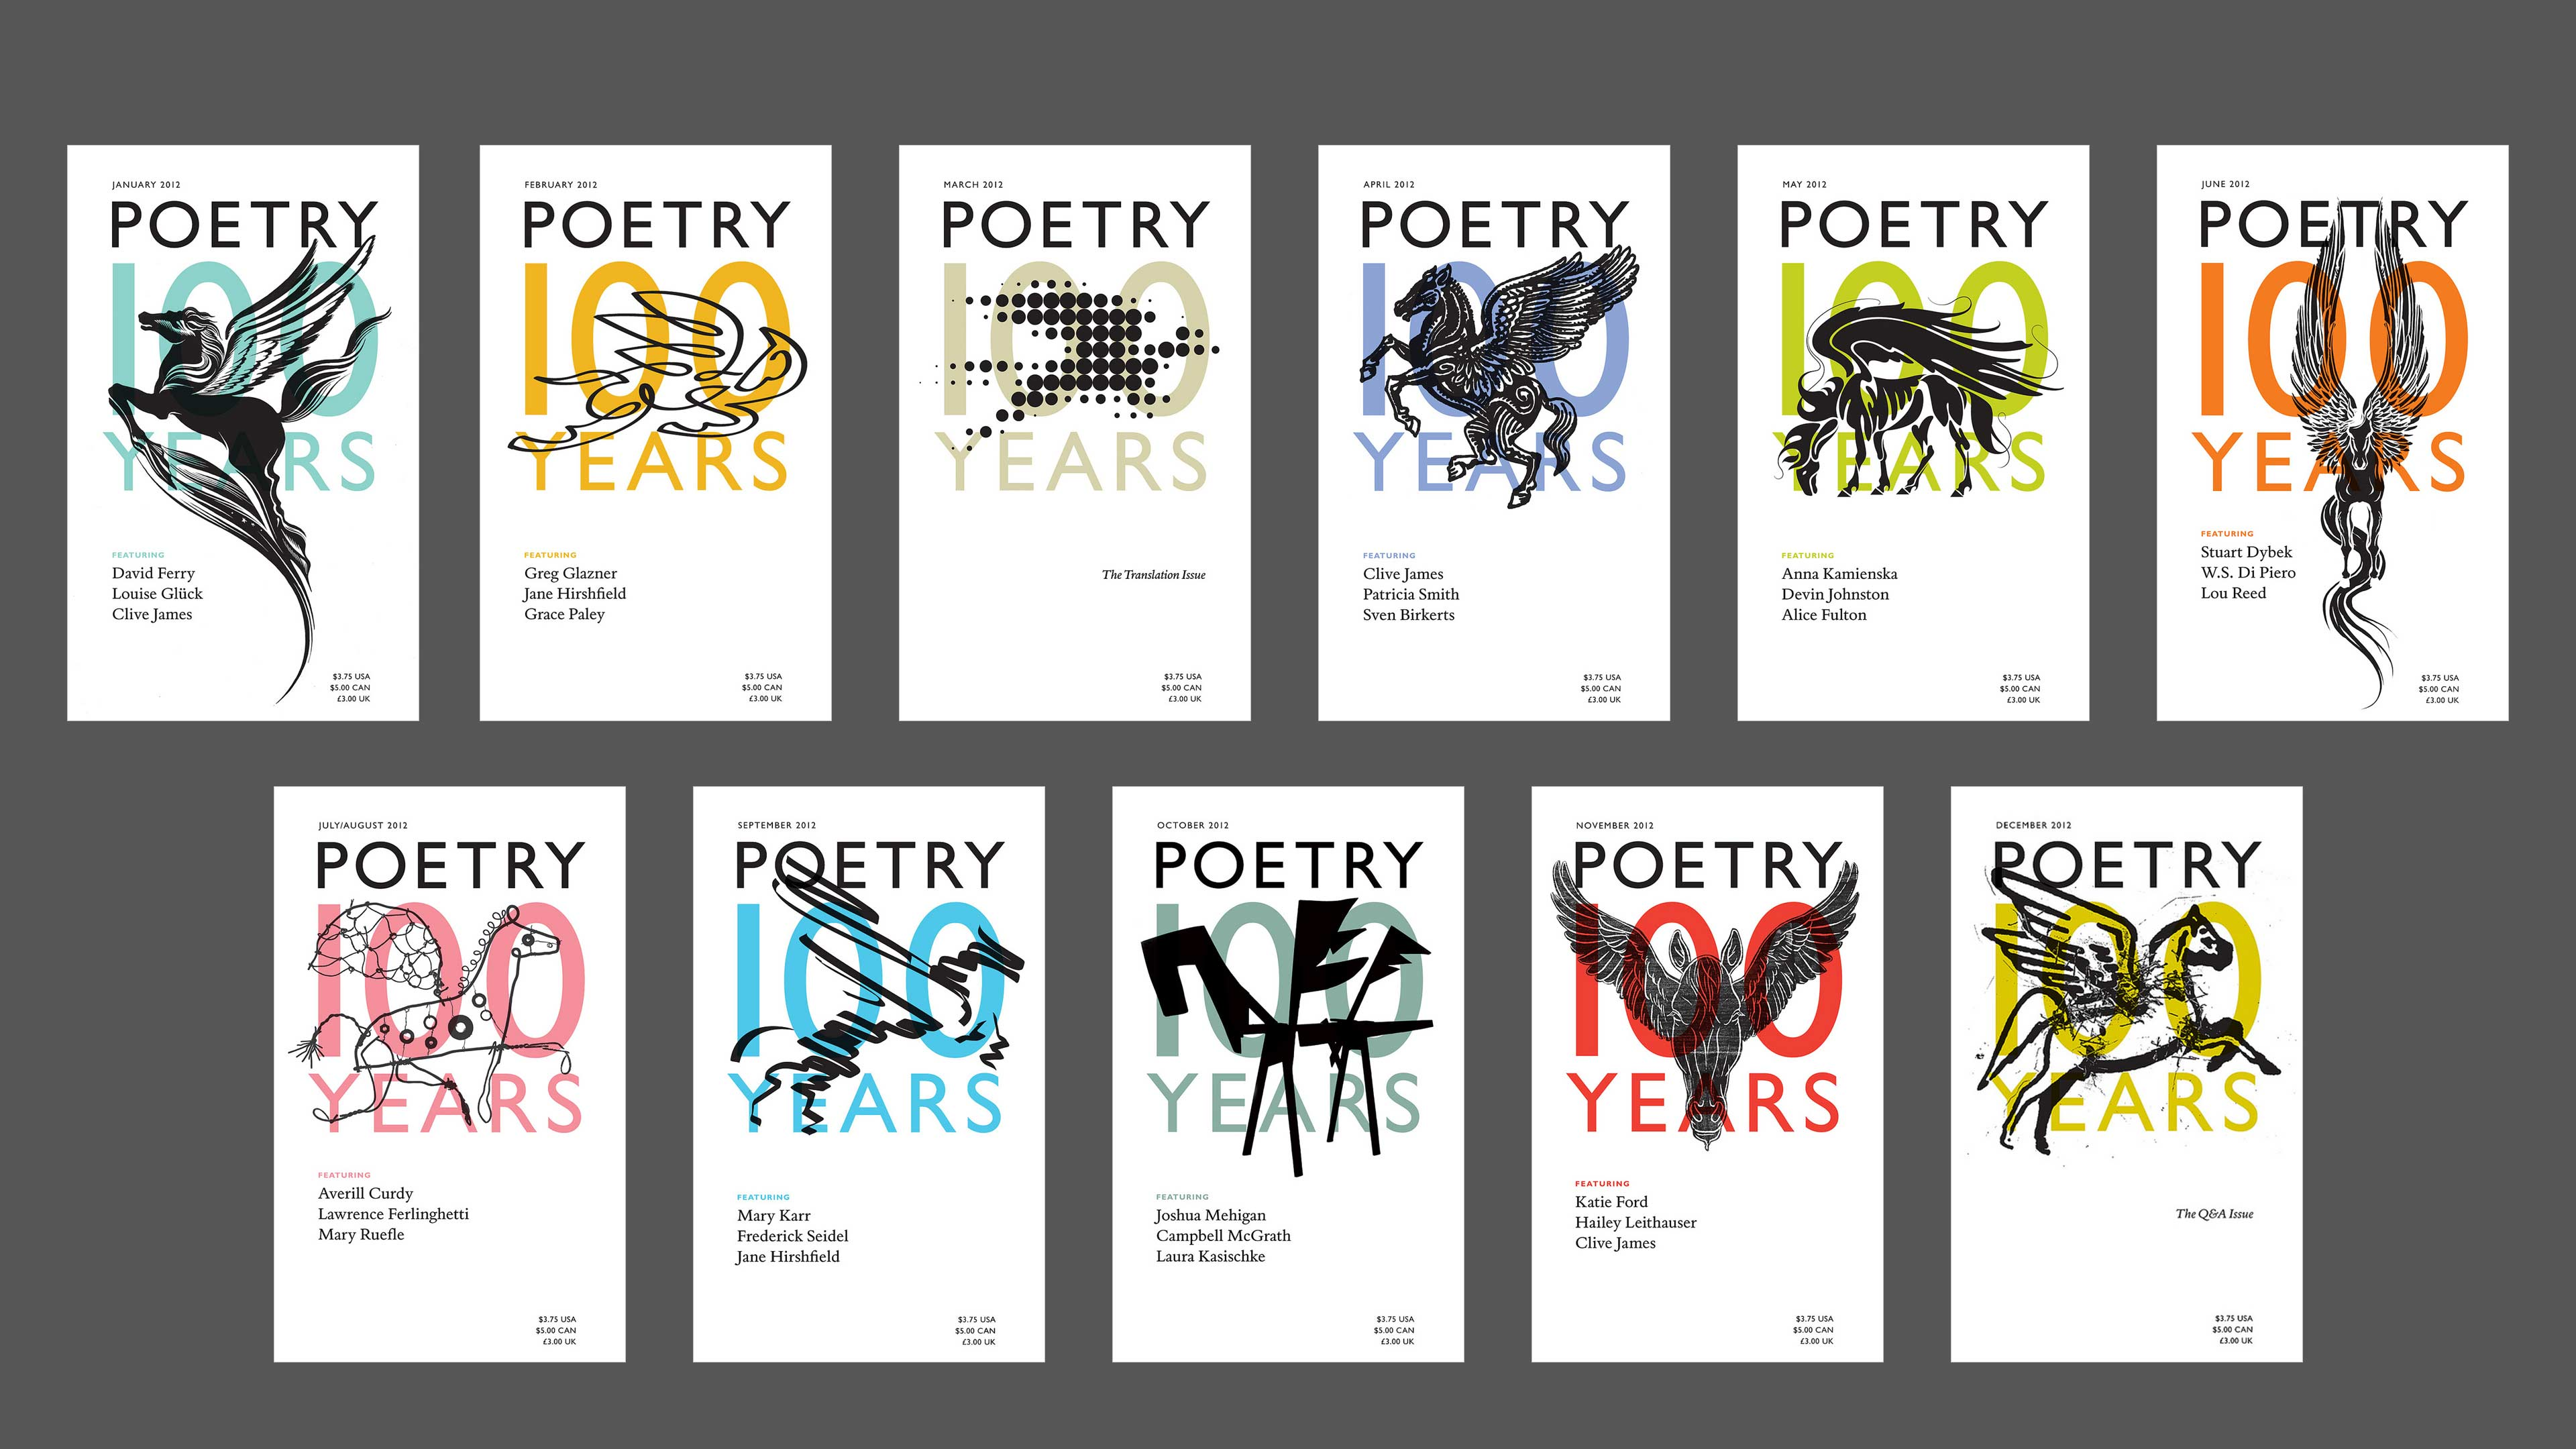 Poetry, Landays issue